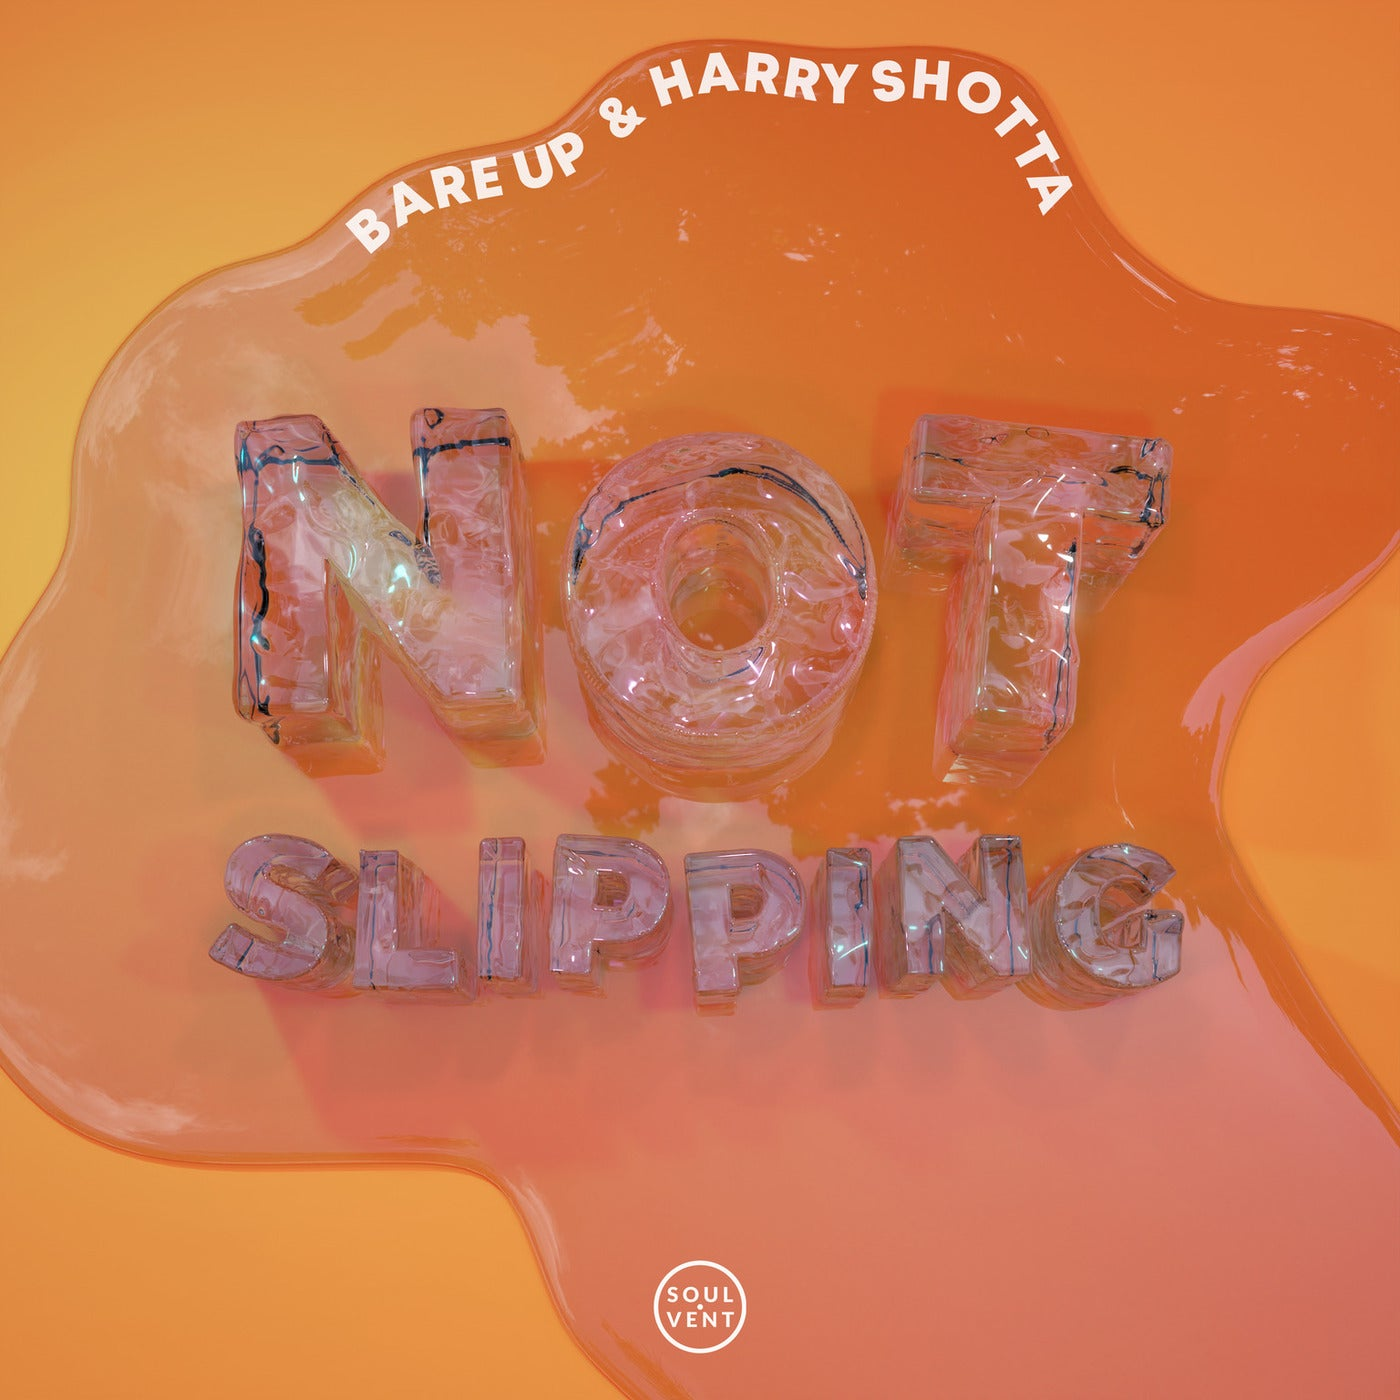 Bare Up - Not Slipping (2021)